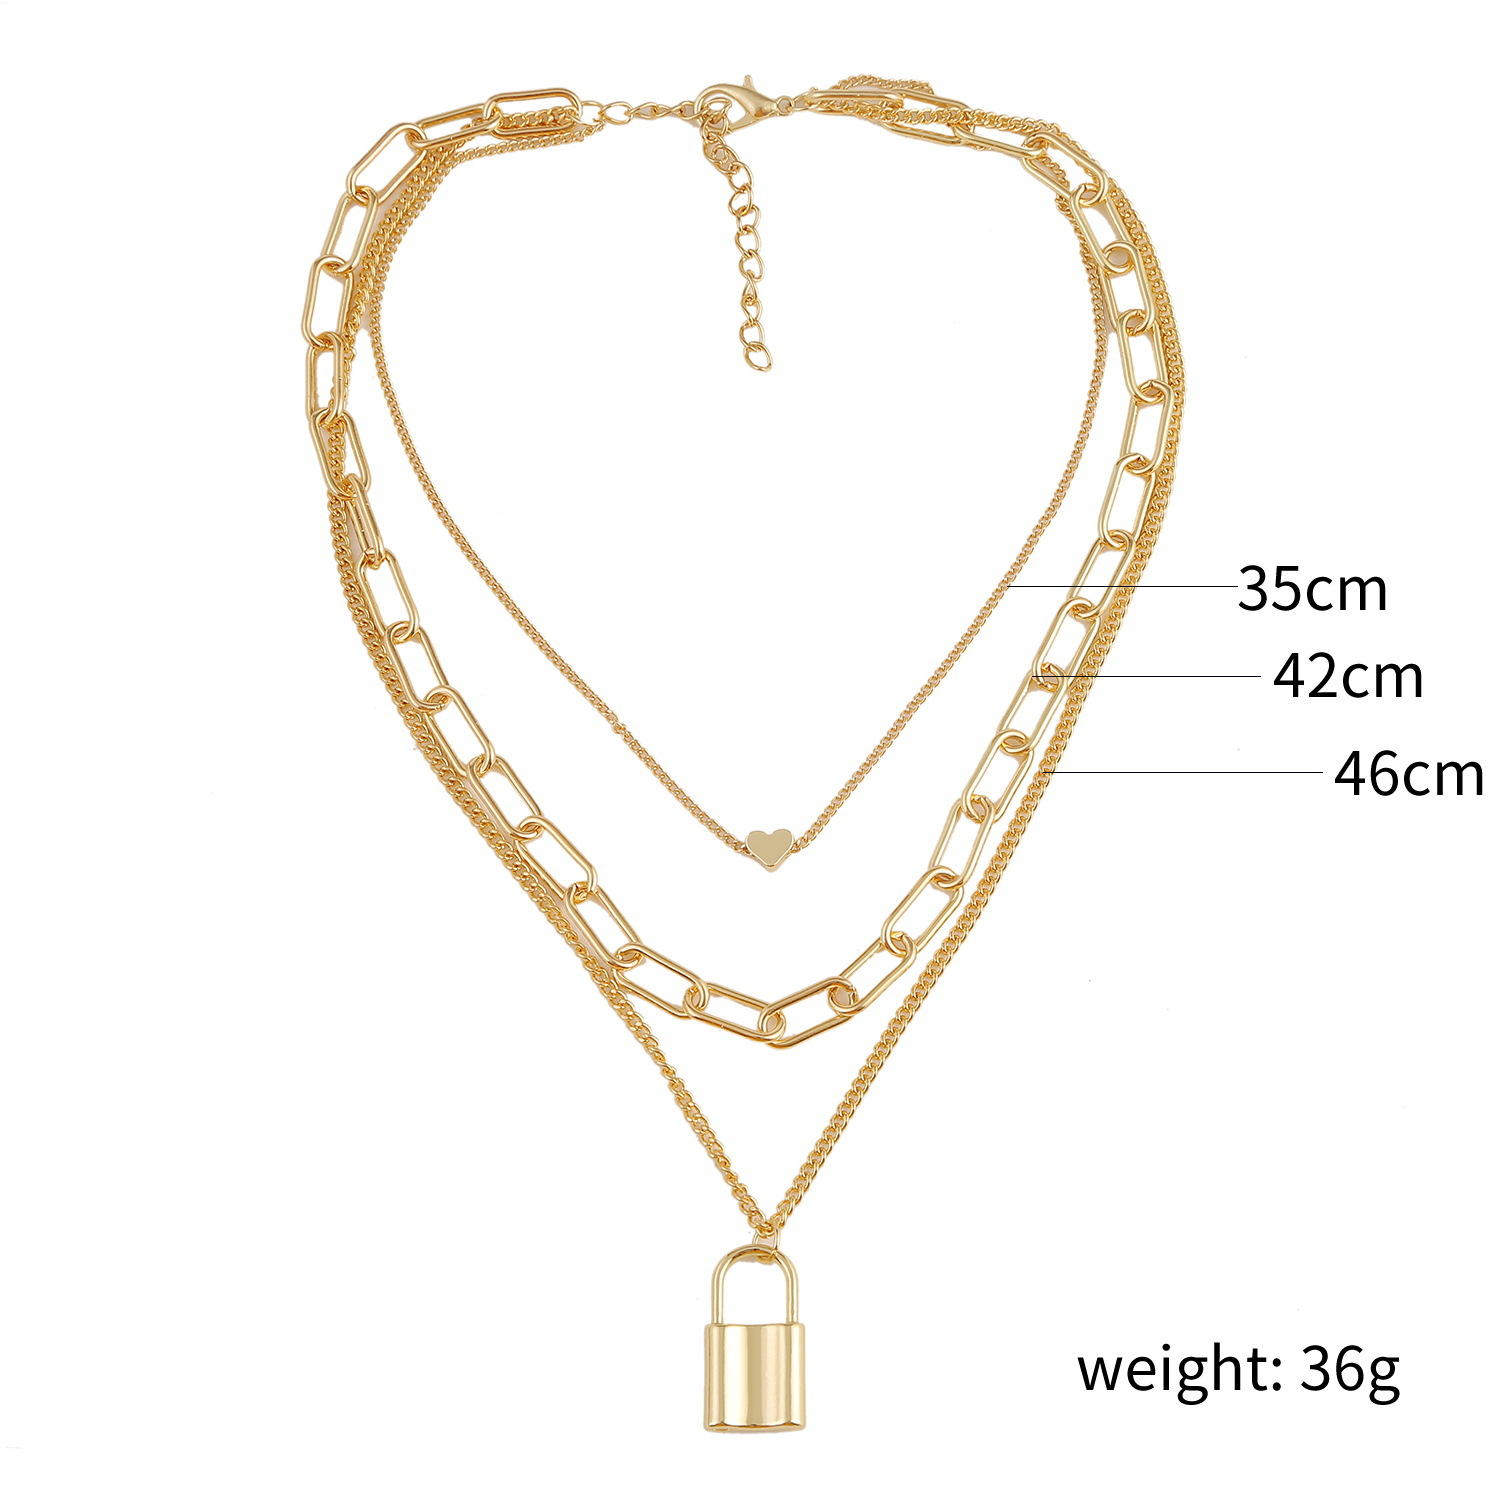 Fashion alloy lock heart necklace pendant three-piece clavicle chain hot sale wholesale nihaojewelry  NHJJ225345